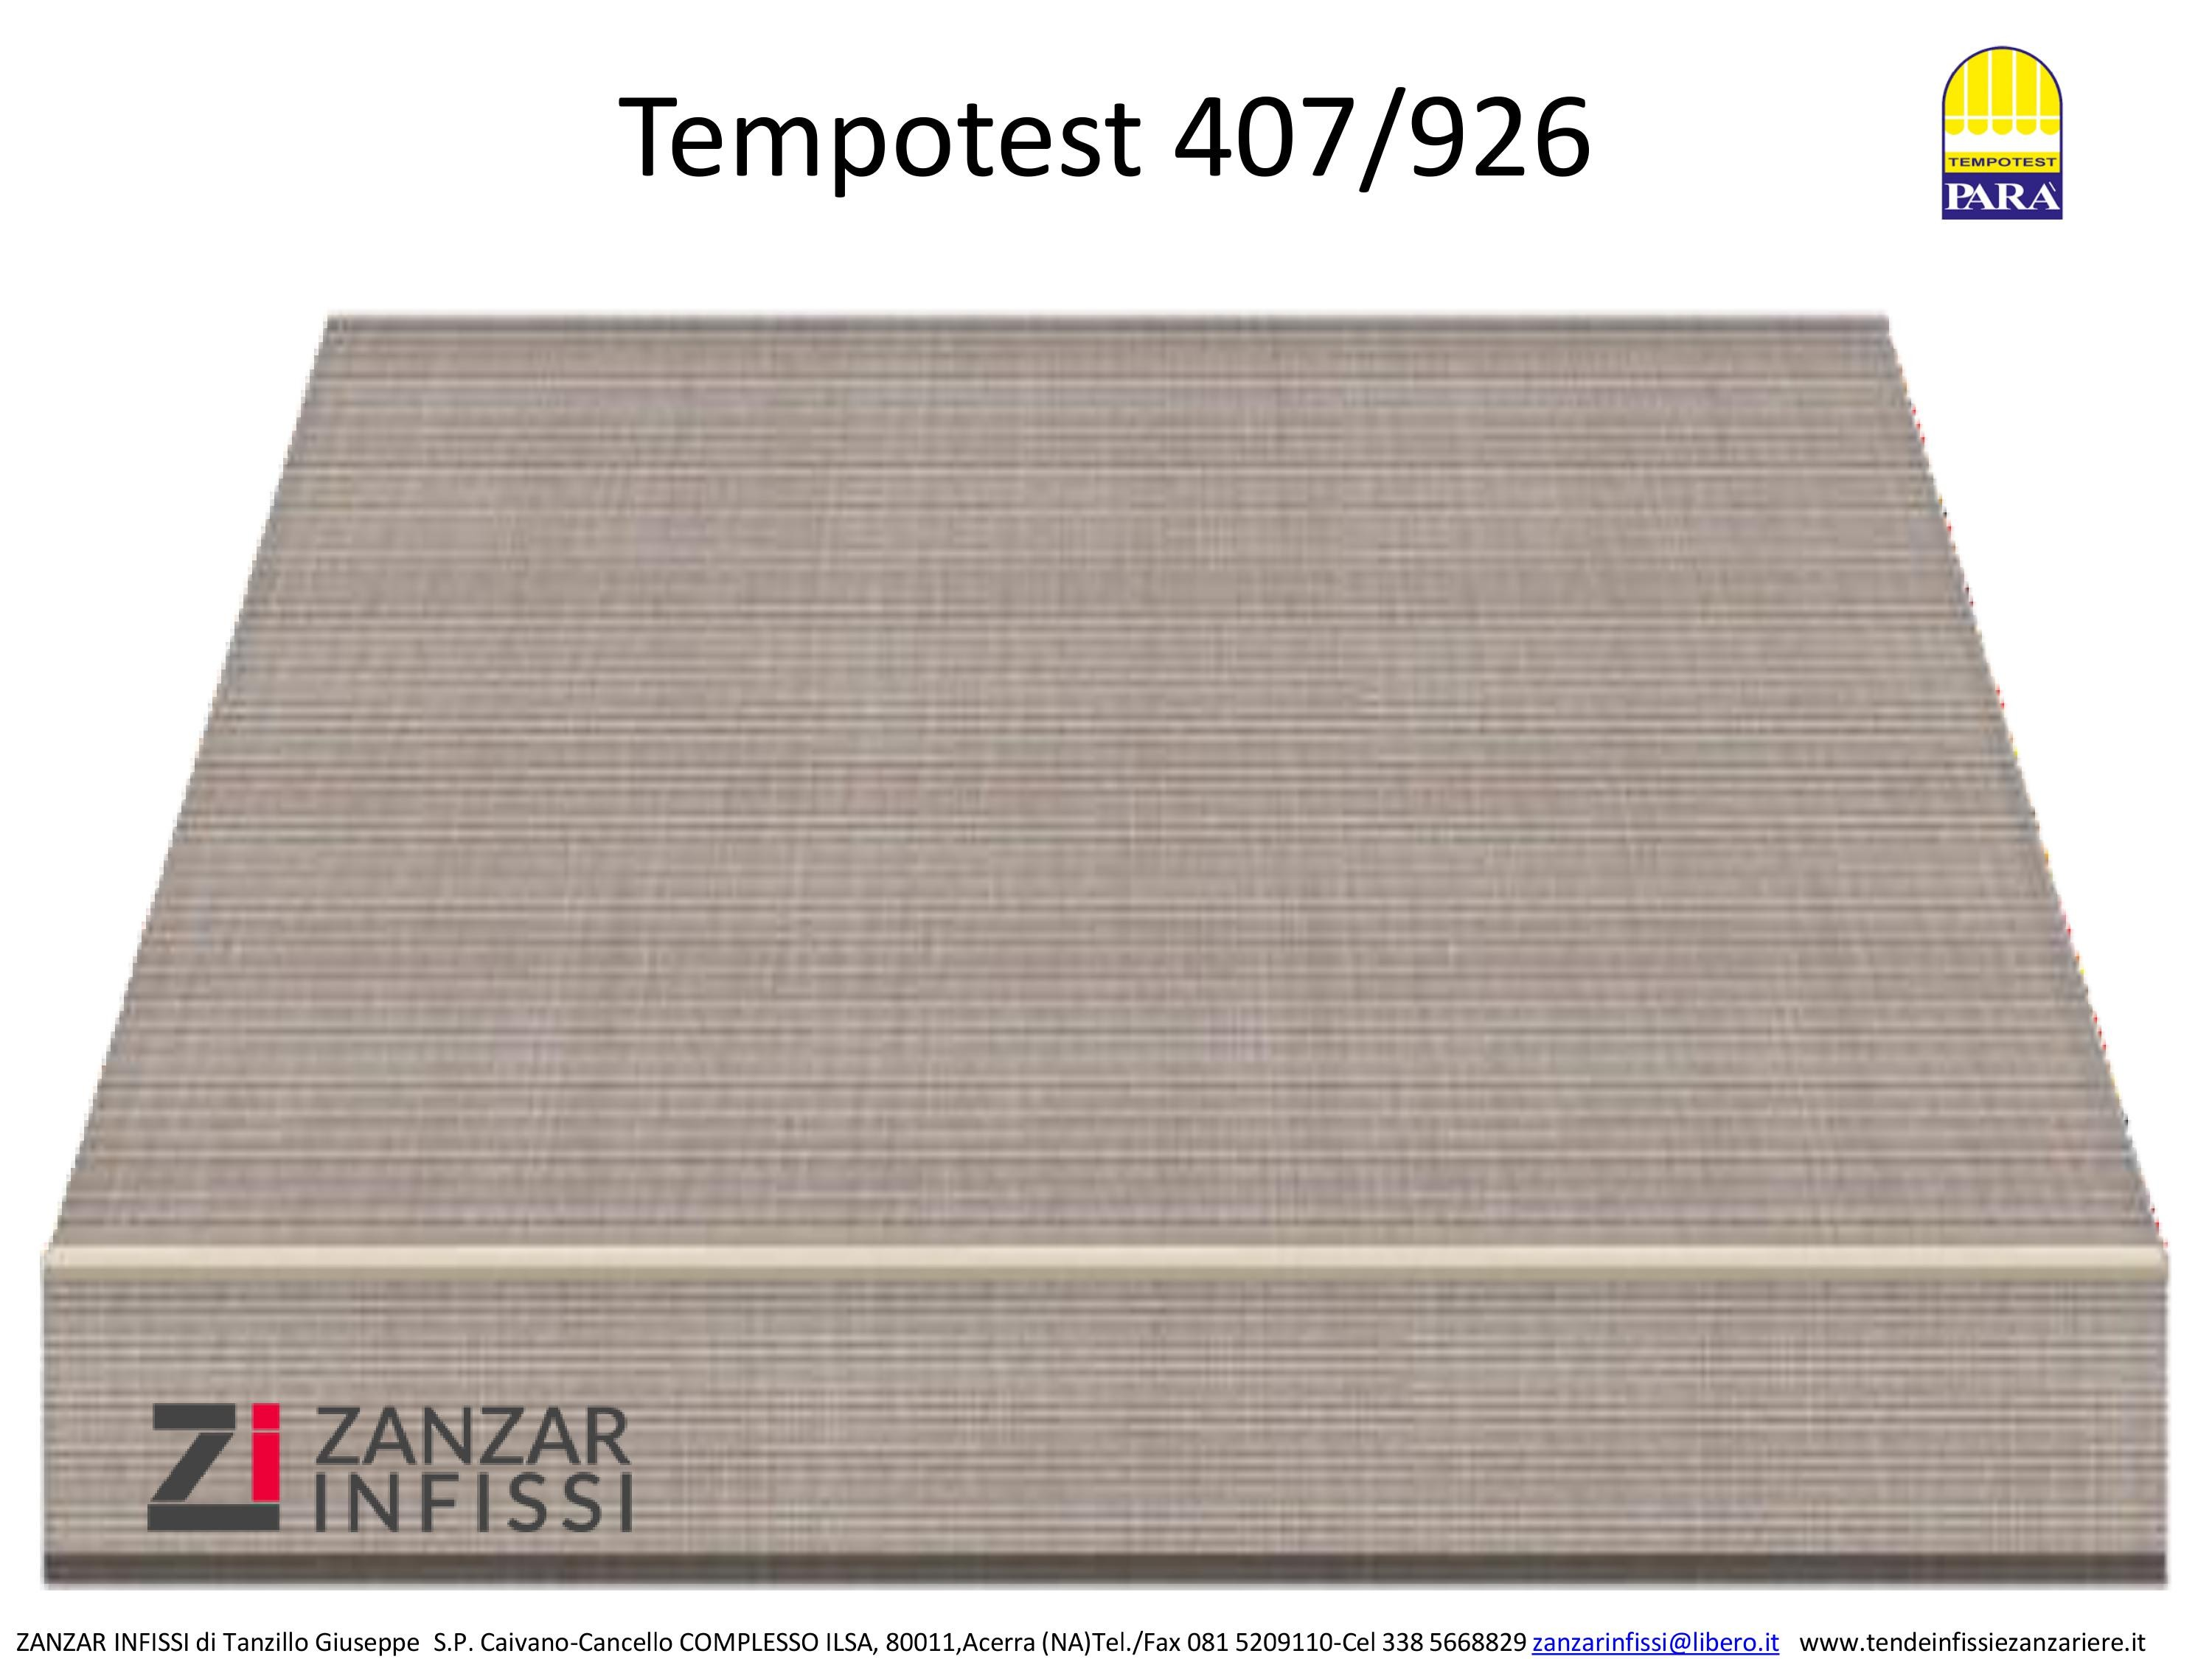 Tempotest 407/926